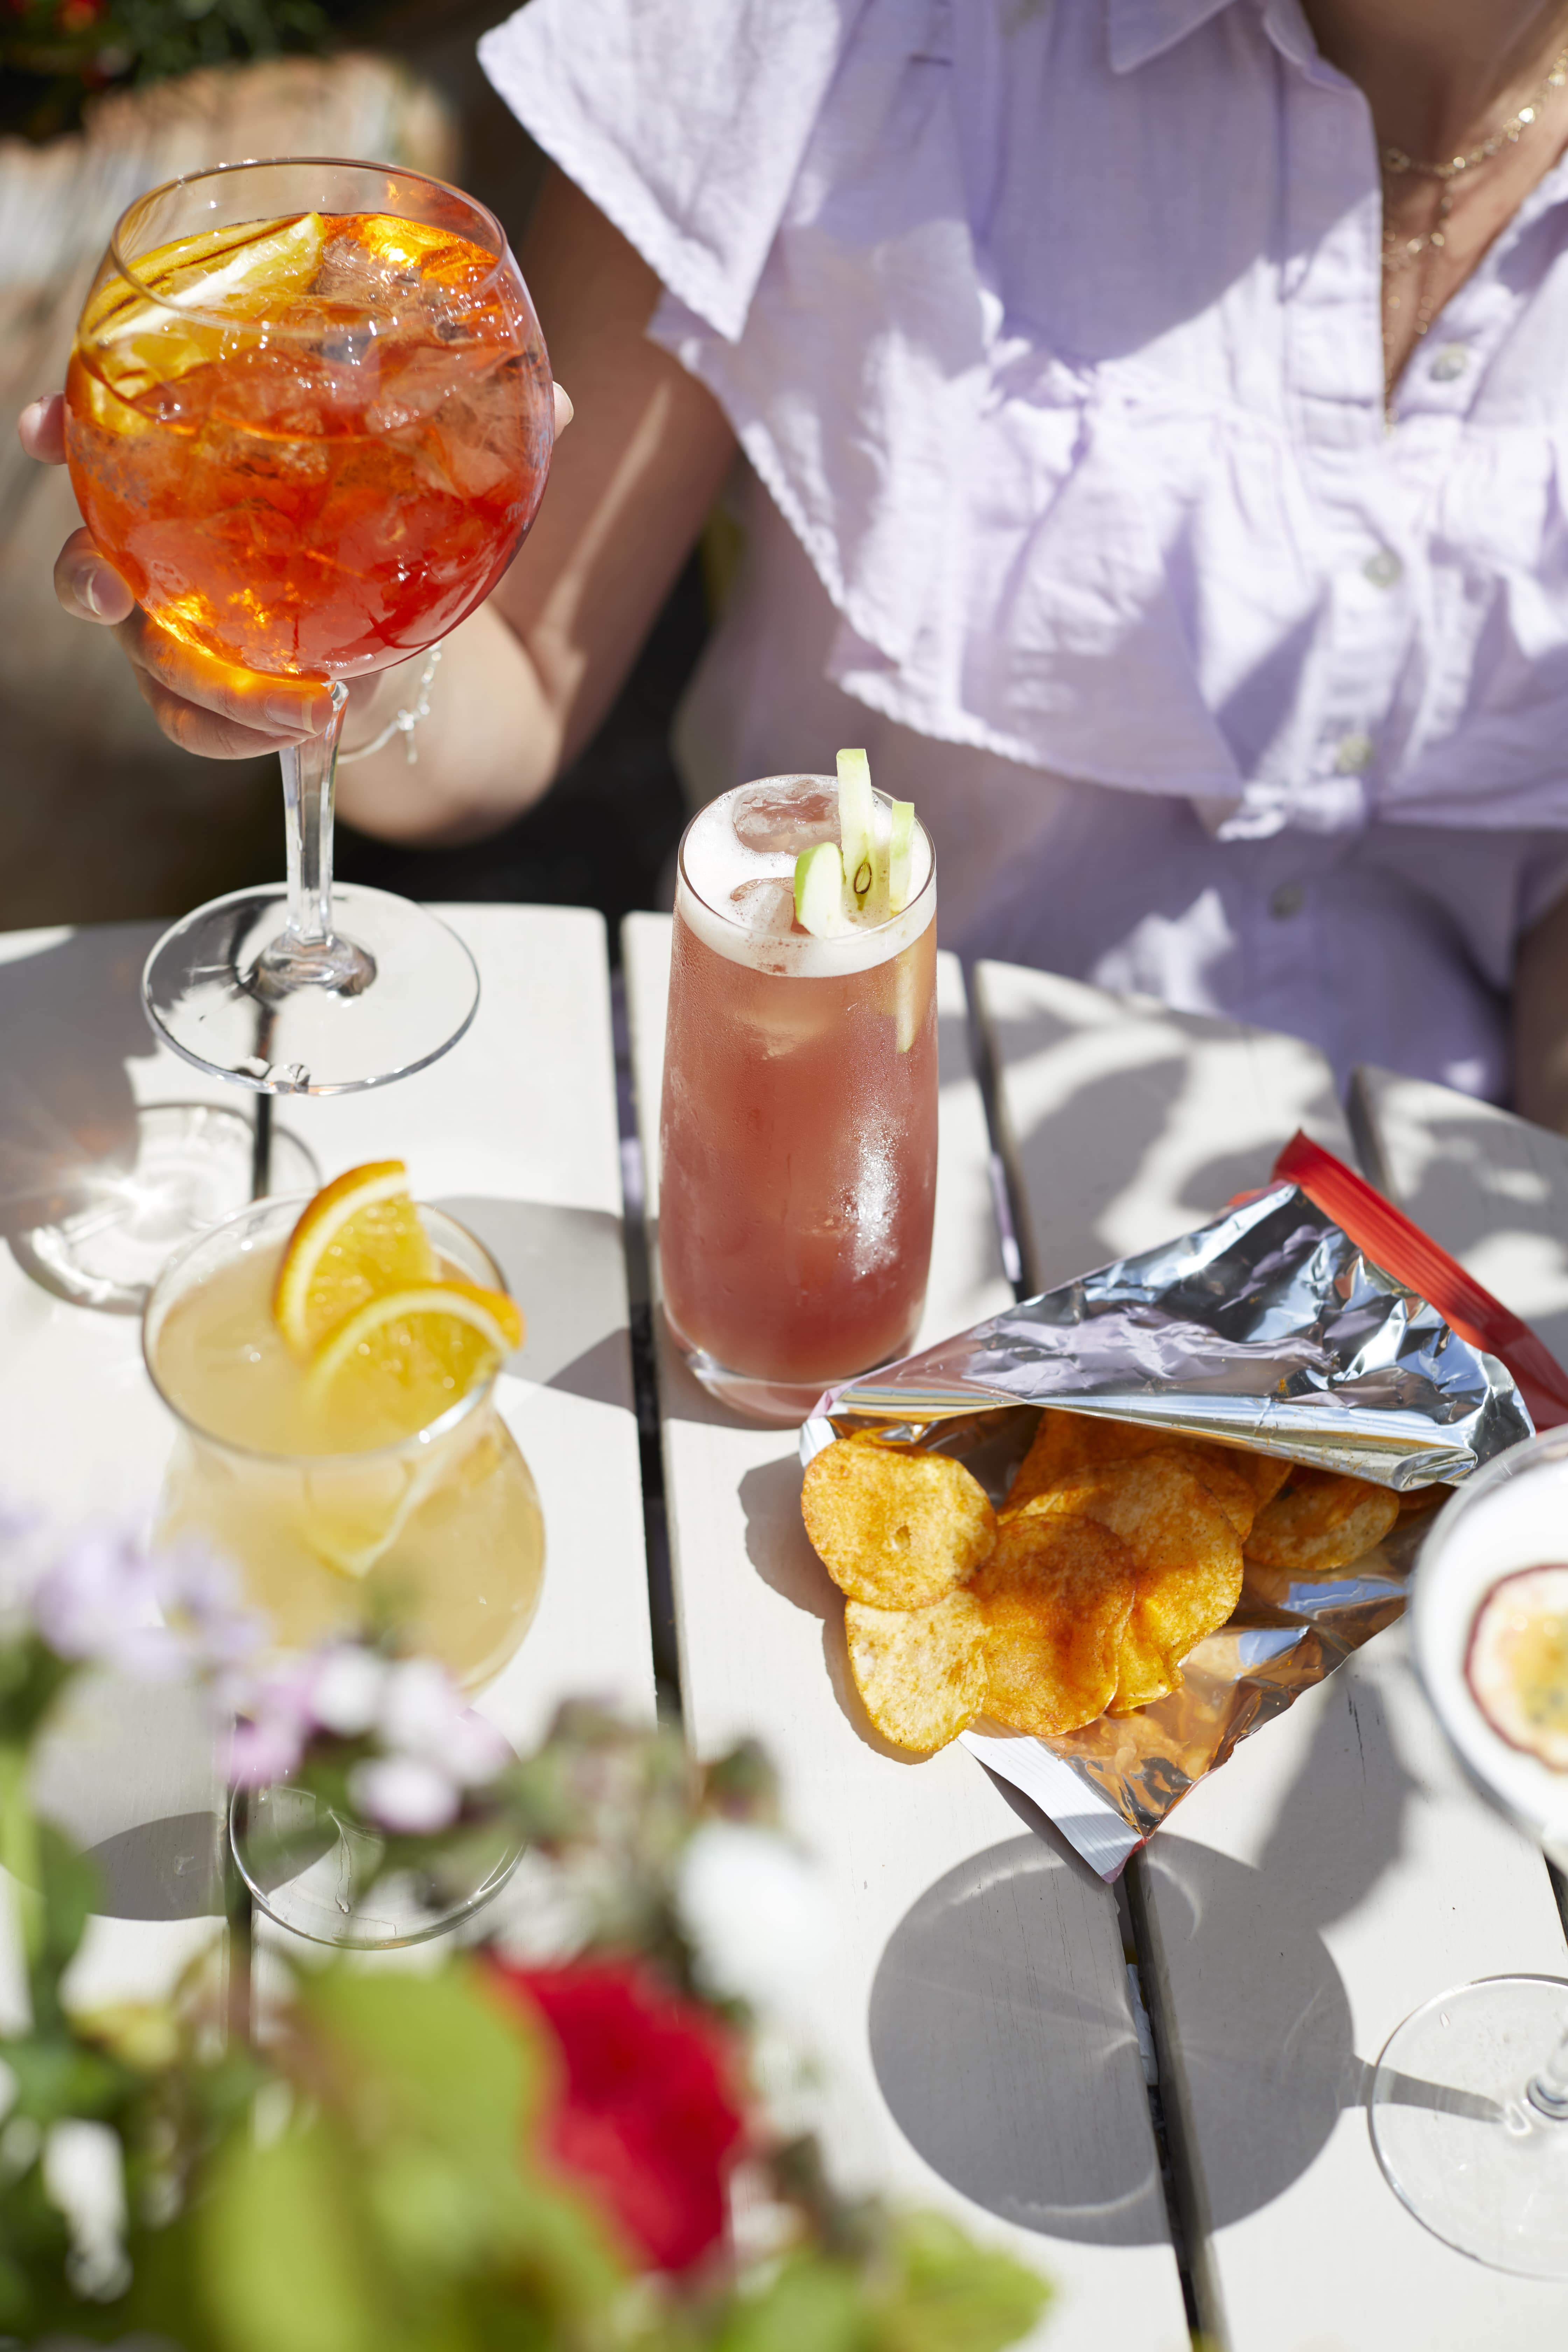 colour cocktails and bar nibbles outdoor in courtyard garden at The Archangel, pub and cocktail bar with bedrooms in Frome, Somerset